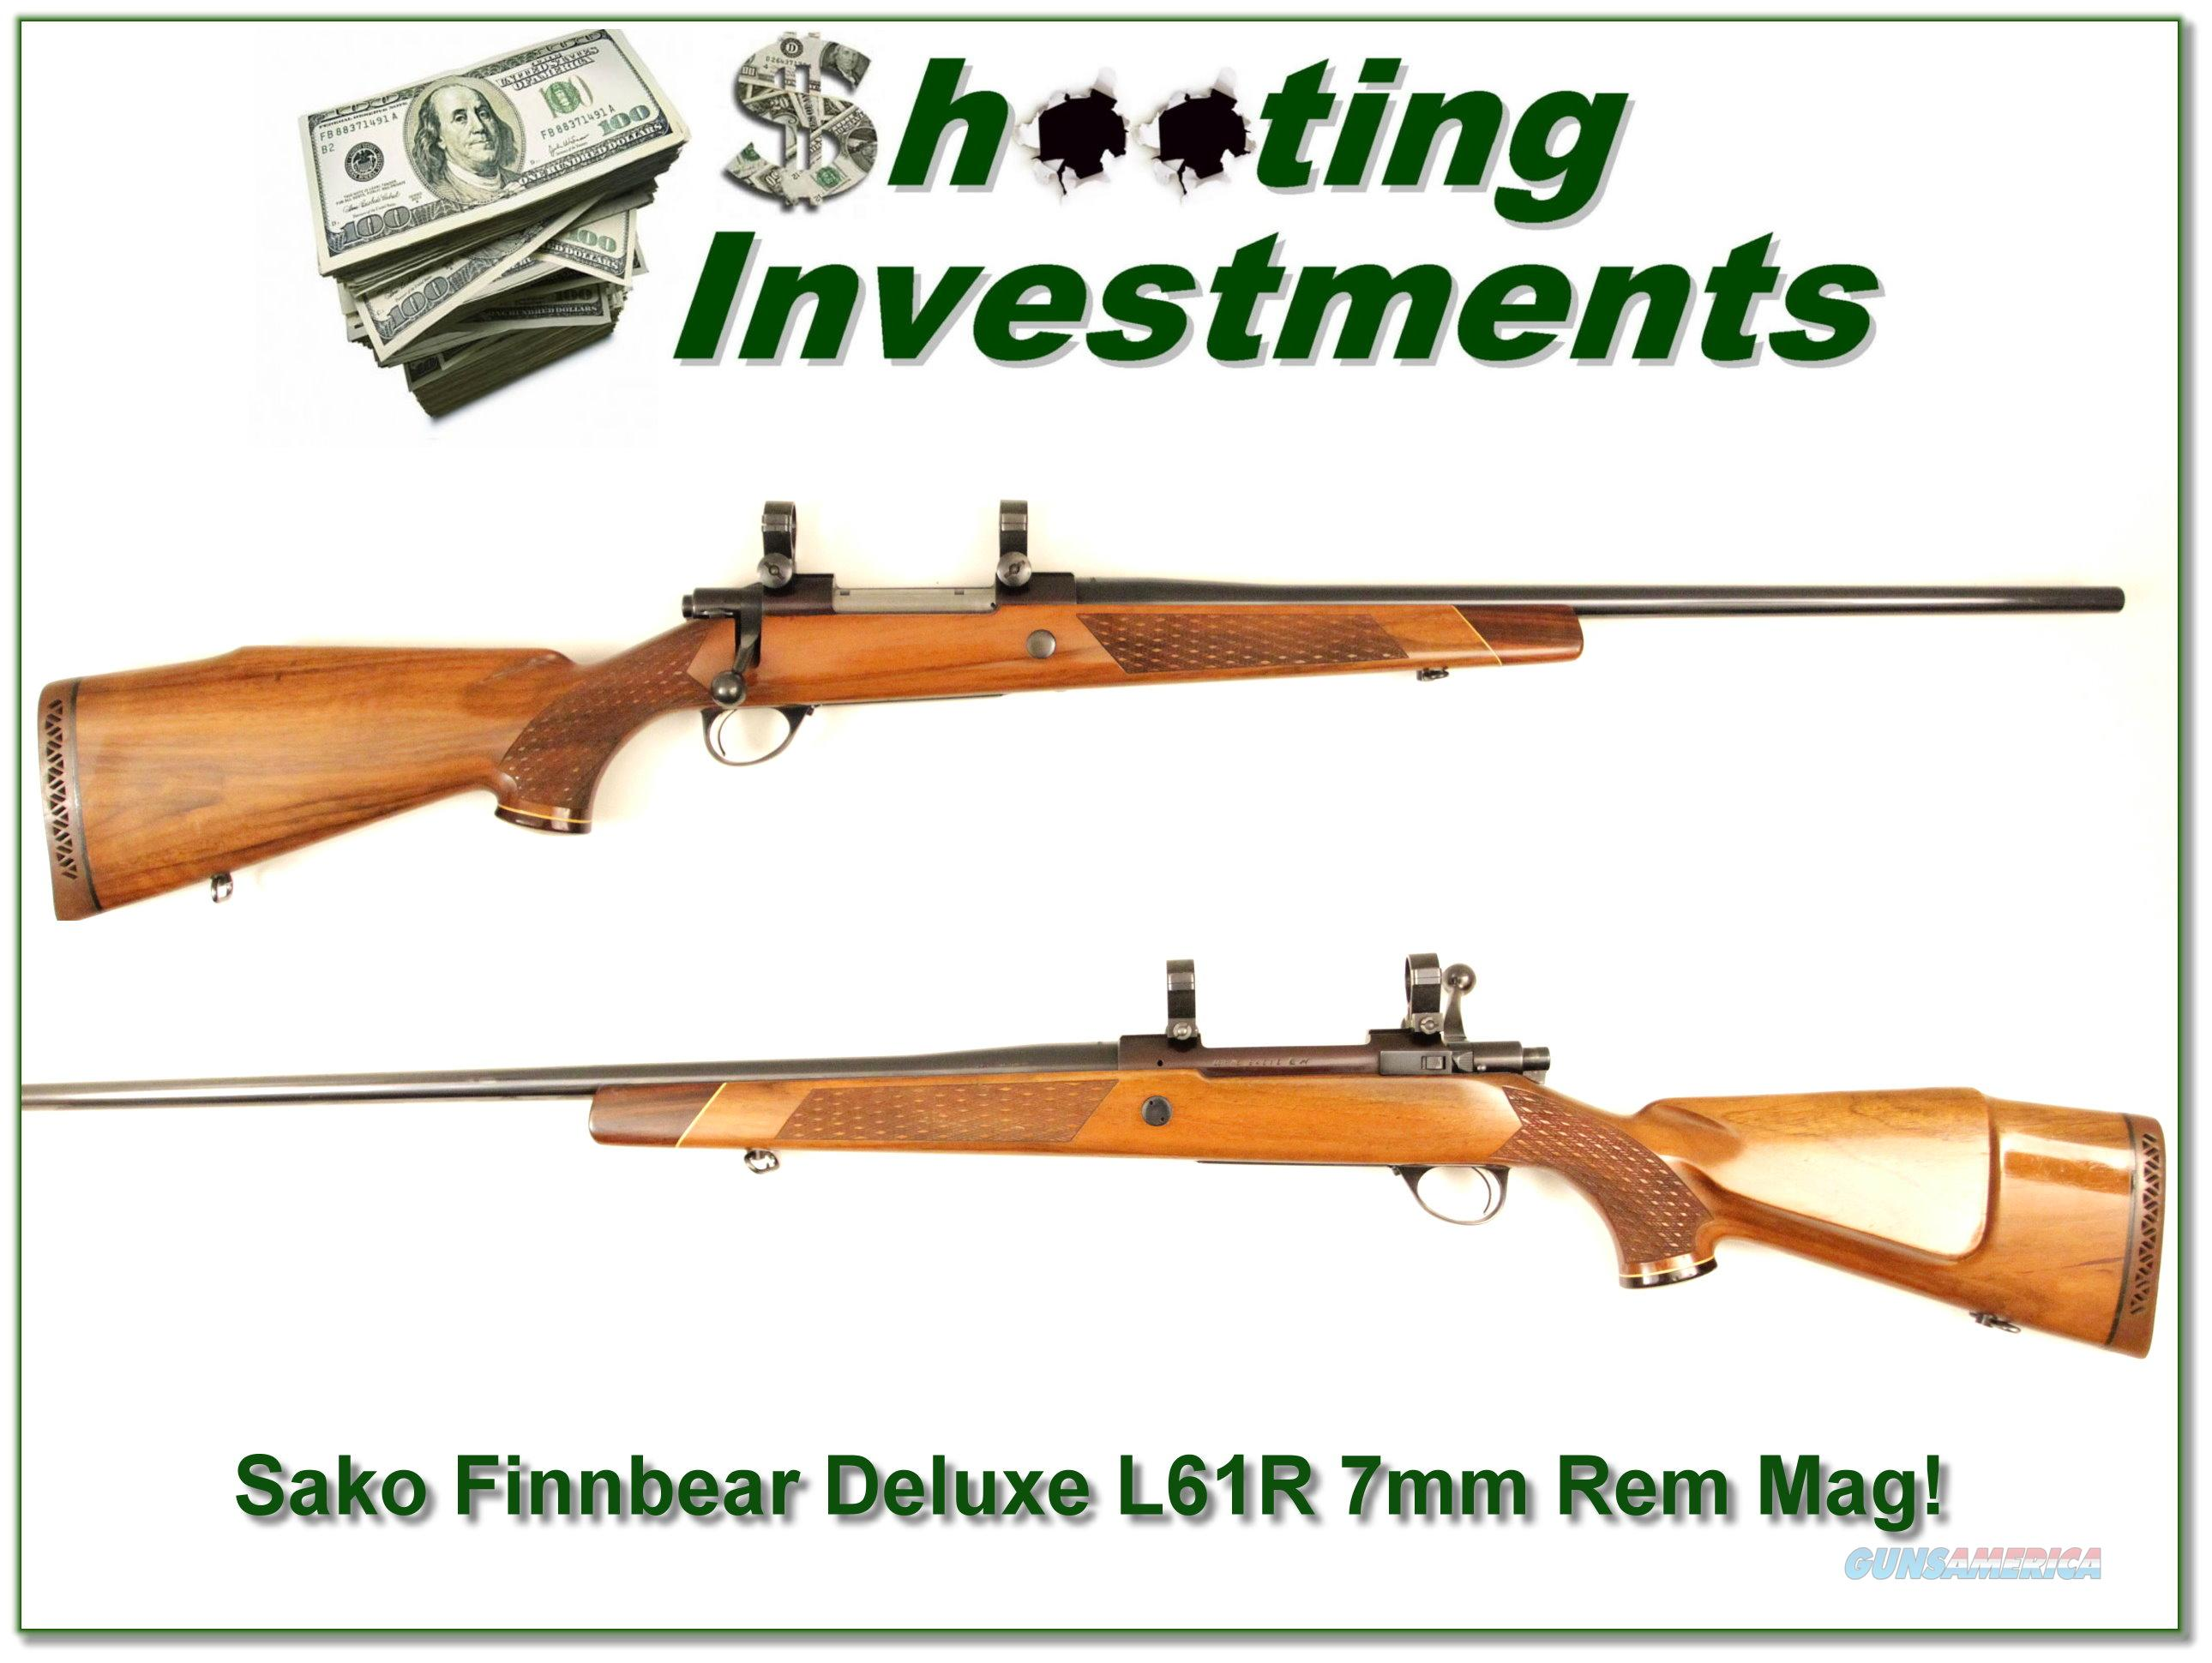 Sako Finnbear Deluxe 7mm Rem Mag!  Guns > Rifles > Sako Rifles > Other Bolt Action